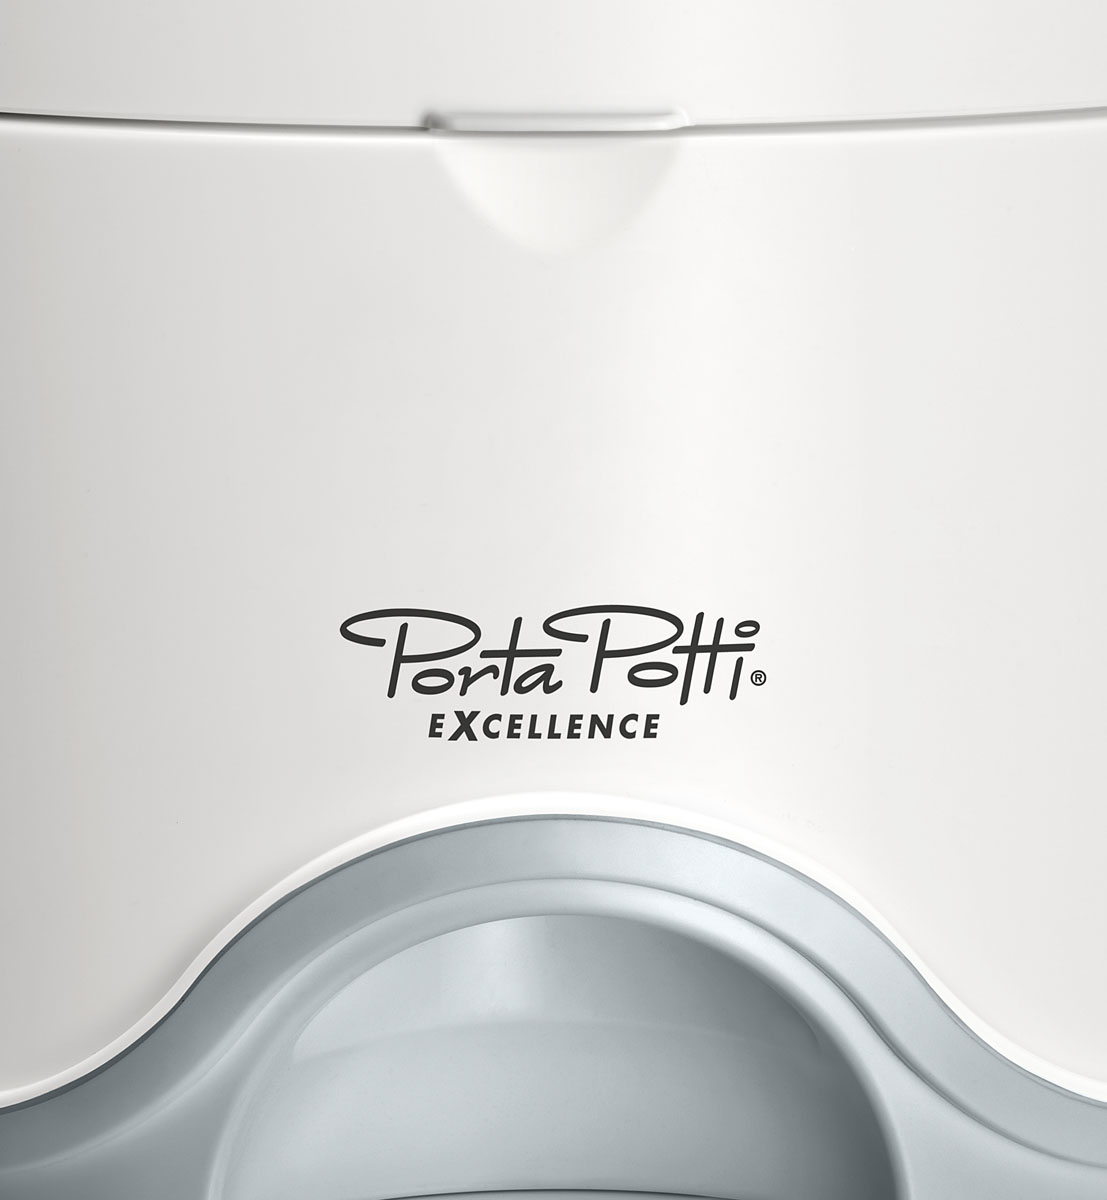 wc-portabil-Porta-Potti-Excellence-2